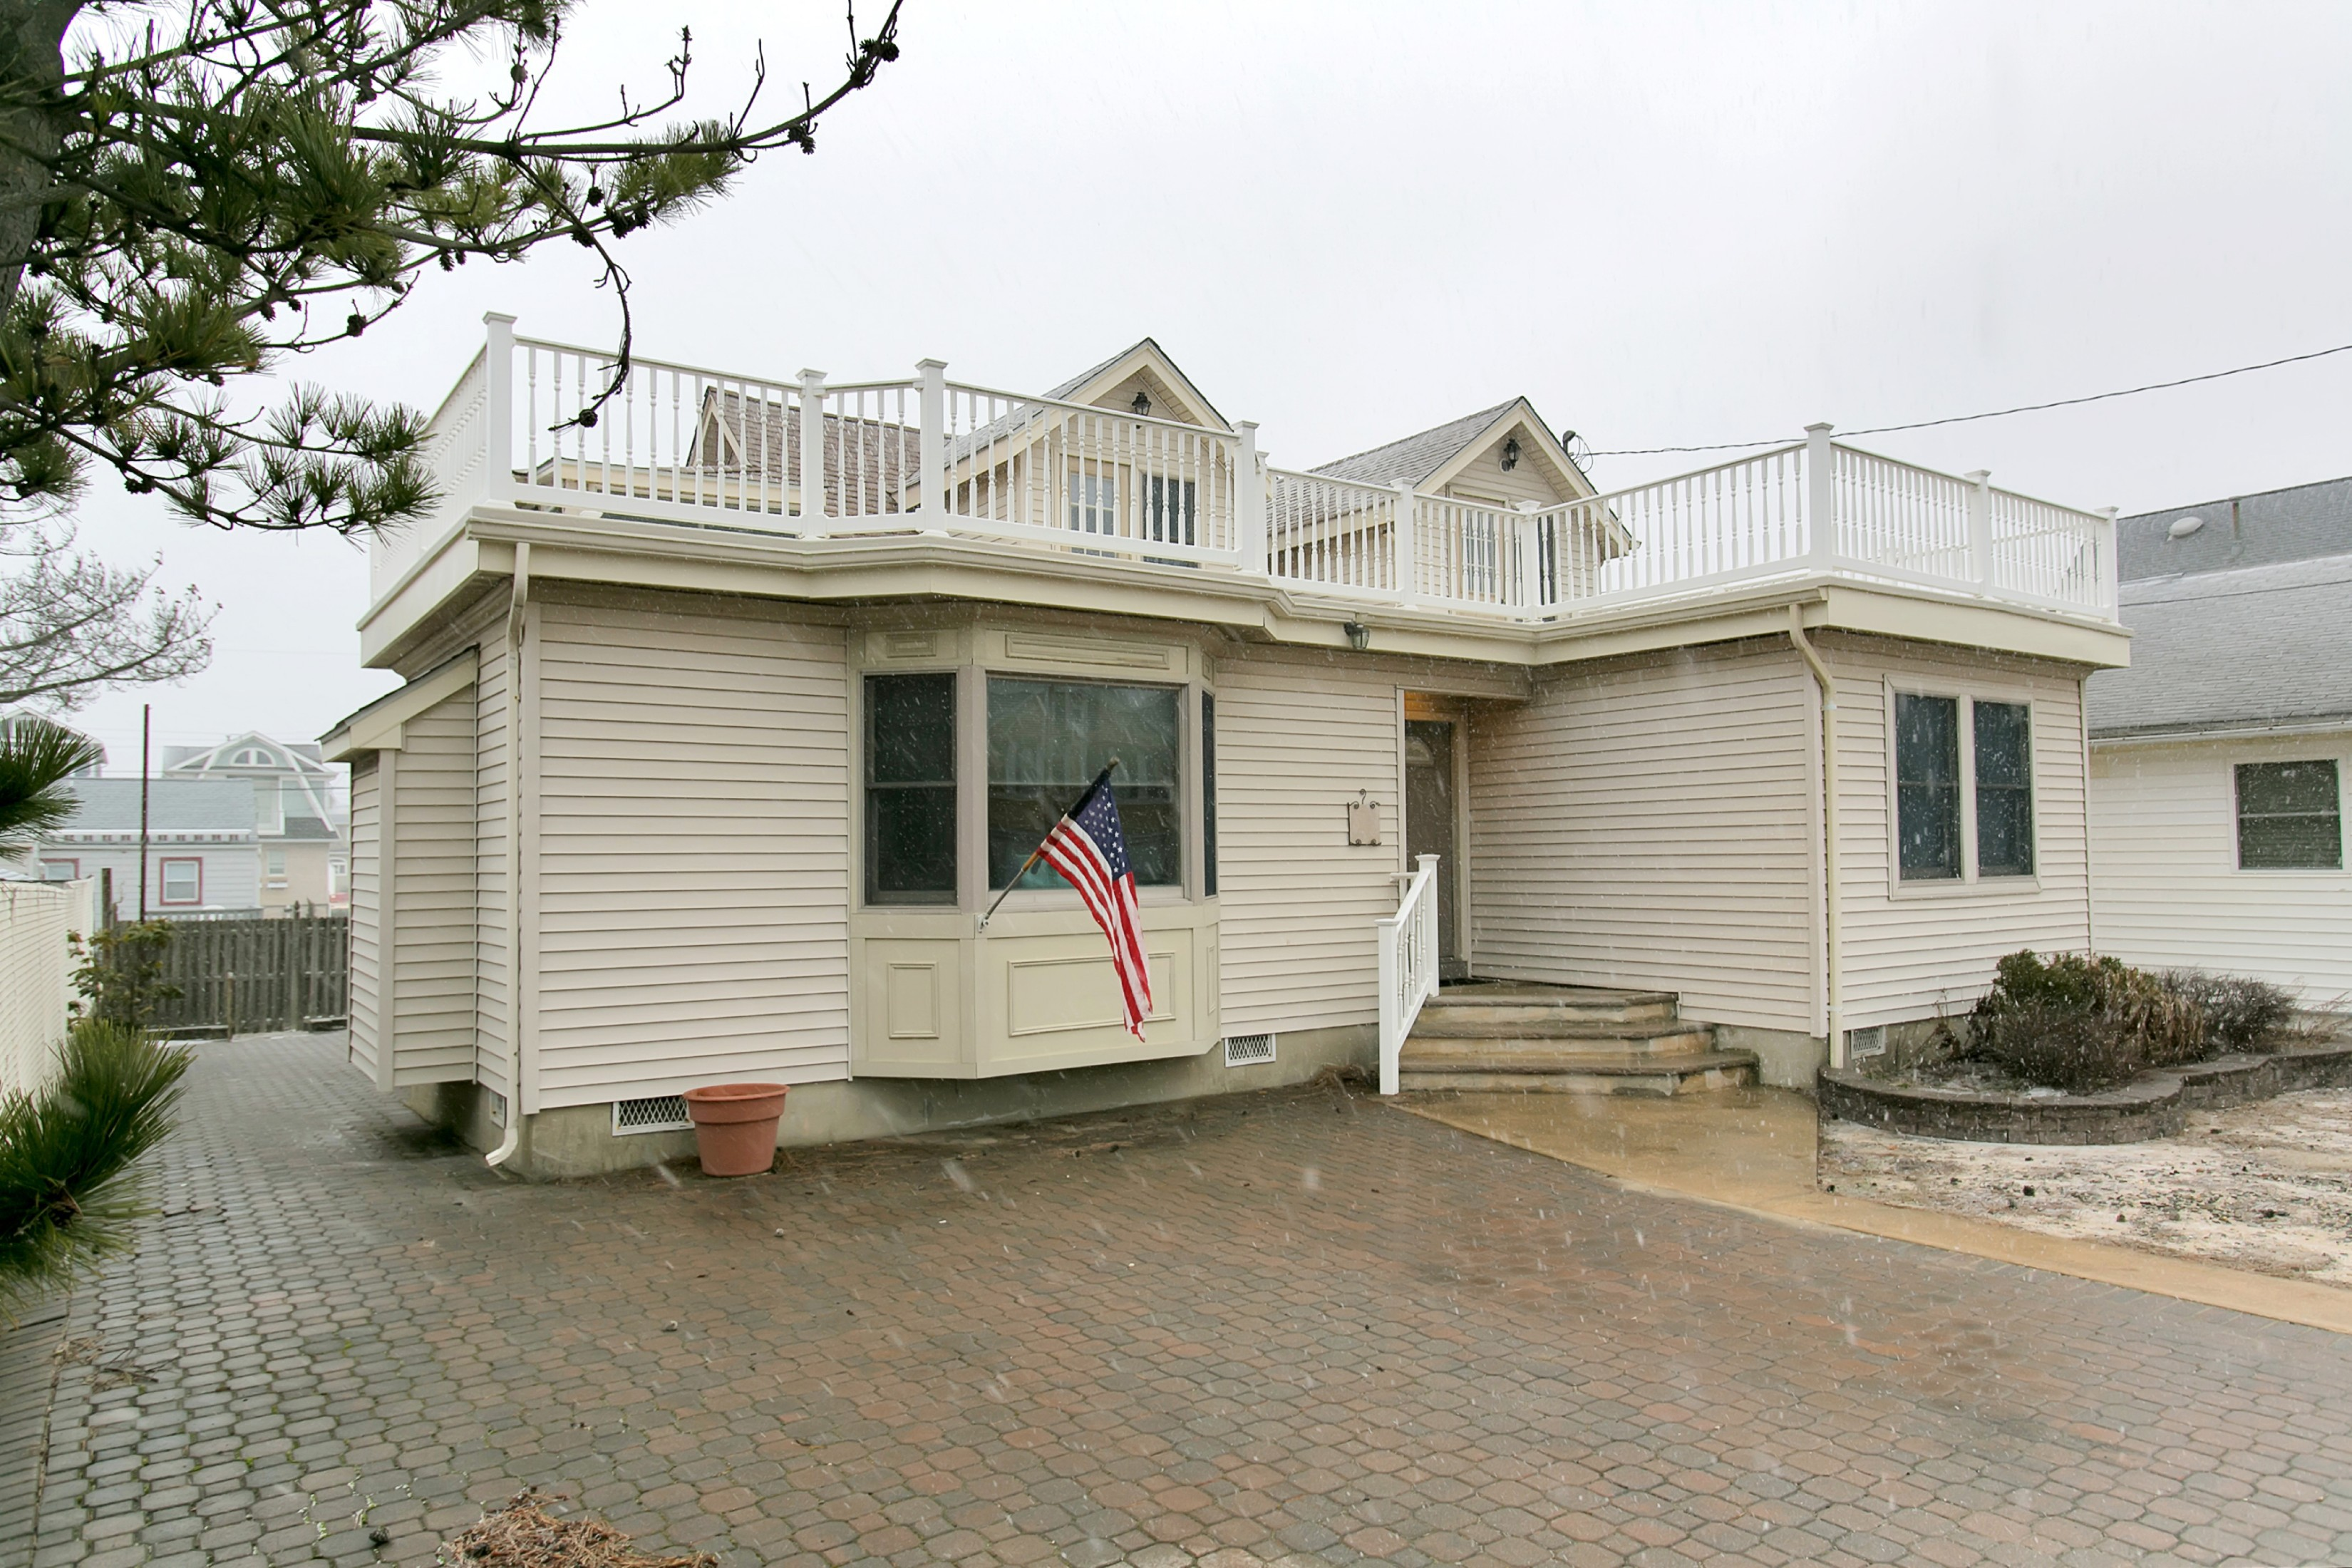 Single Family Home for Sale at Shore Colonial 69 First Ave Manasquan, New Jersey 08736 United States